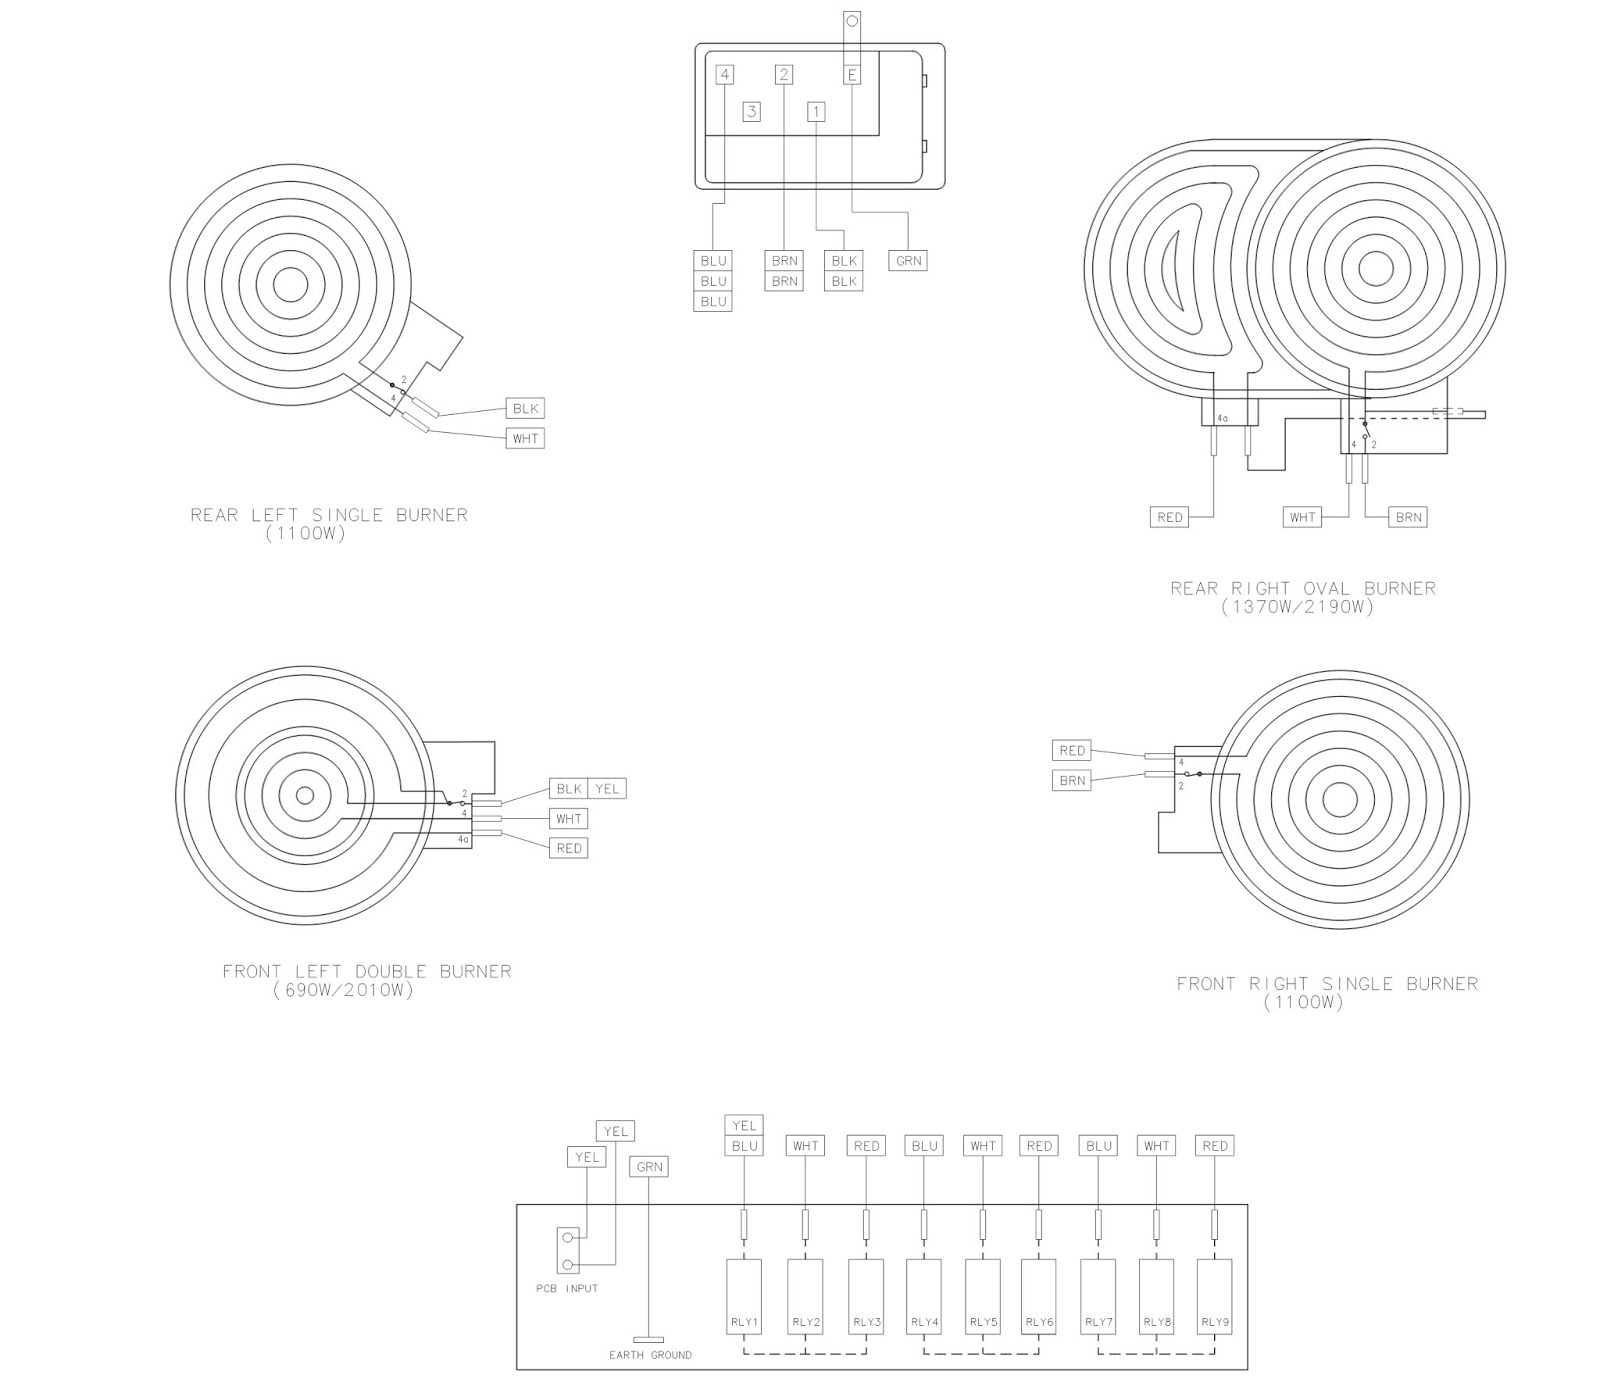 samsung ceramic glass hob c61rcast - repair help - electrical connection